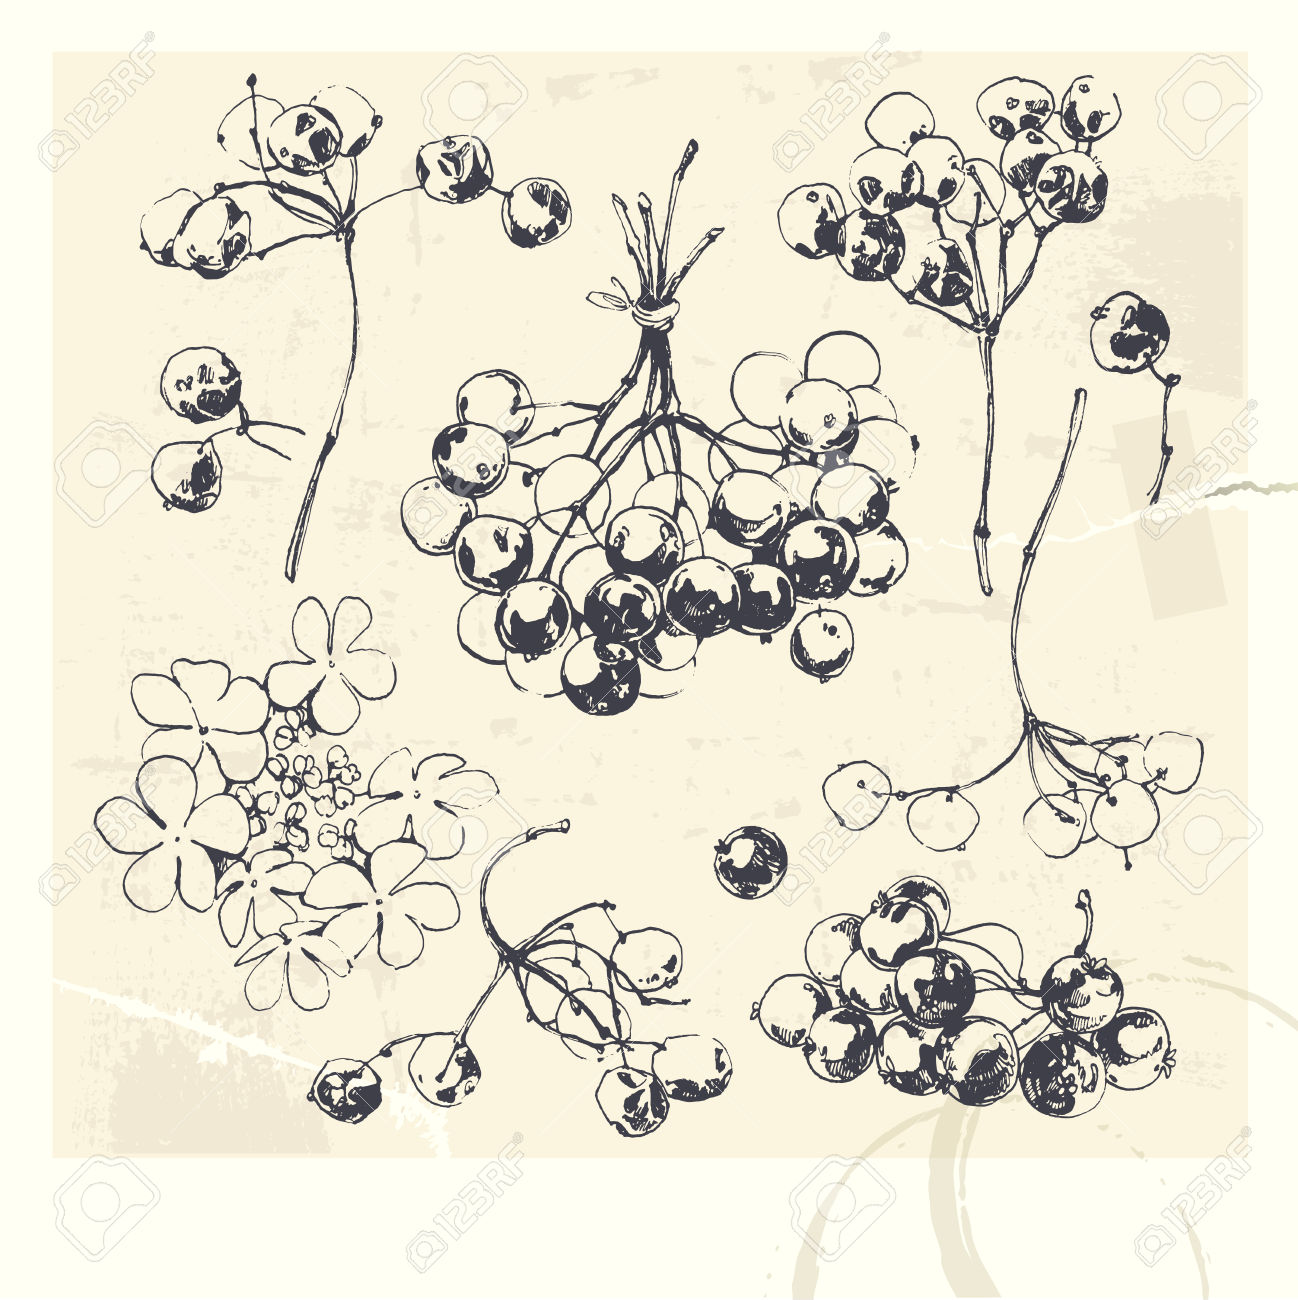 Clip Art Collection Of Hand Drawn Illustrations Of Guelder Rose.